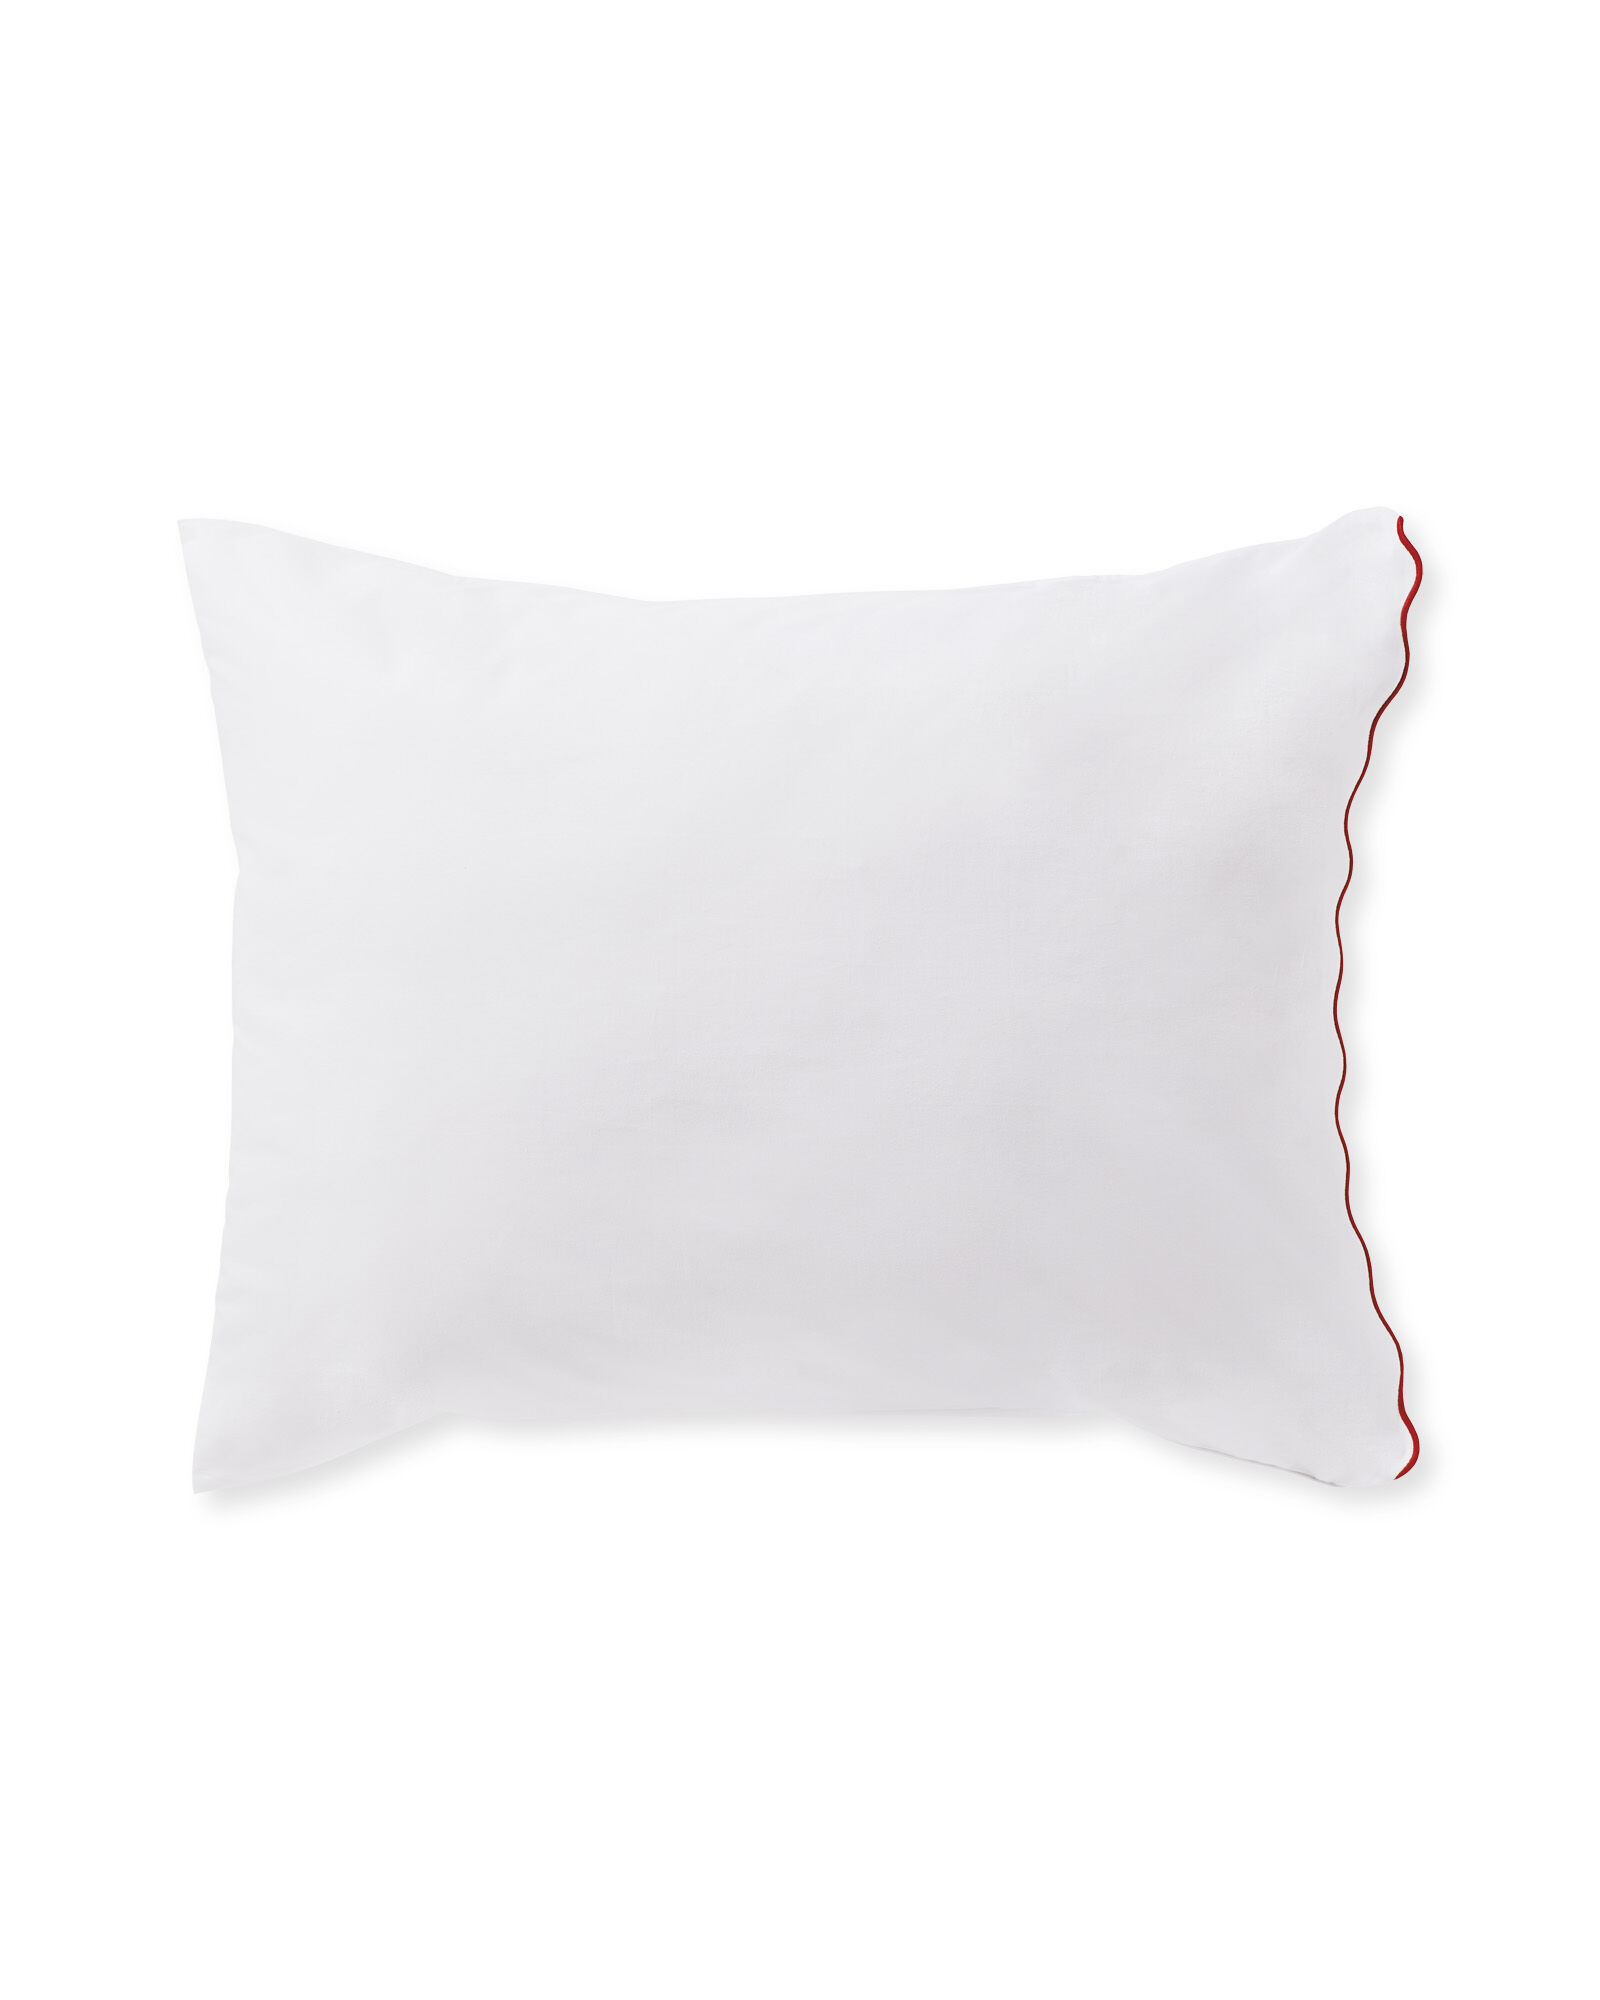 Wave Pillowcases (Set of 2), Lobster